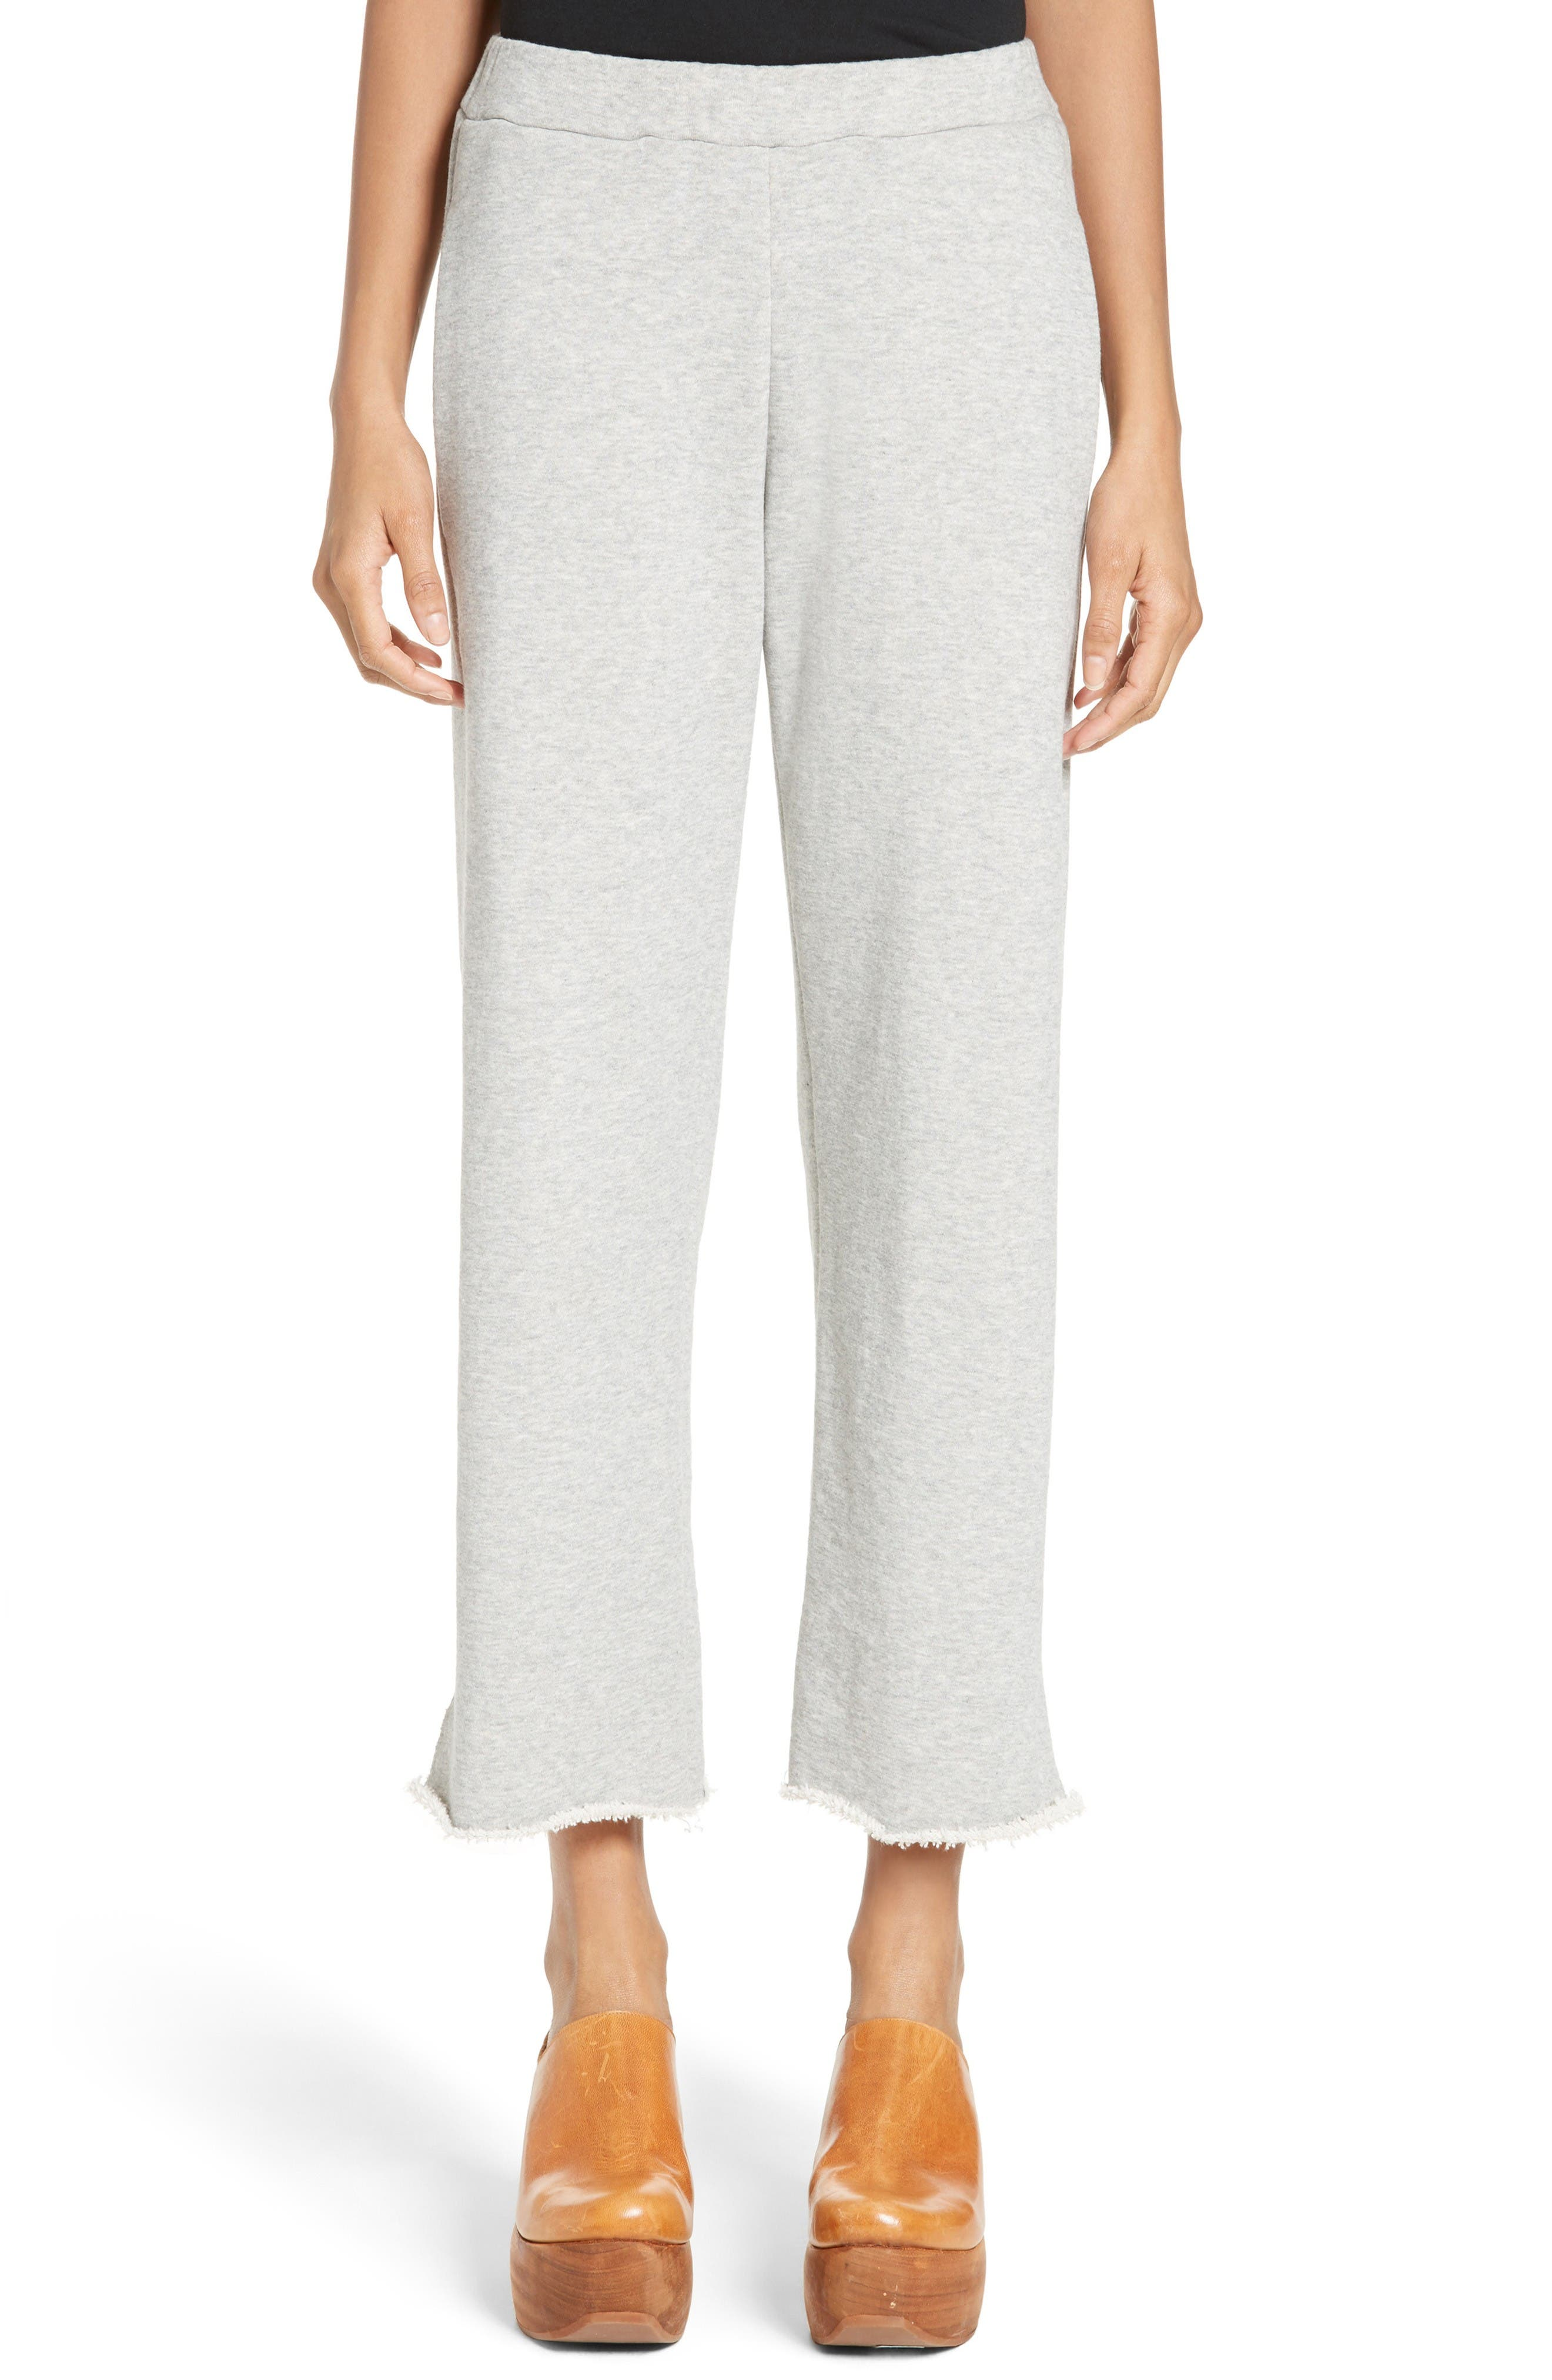 Simon Miller Canal Crop Sweatpants